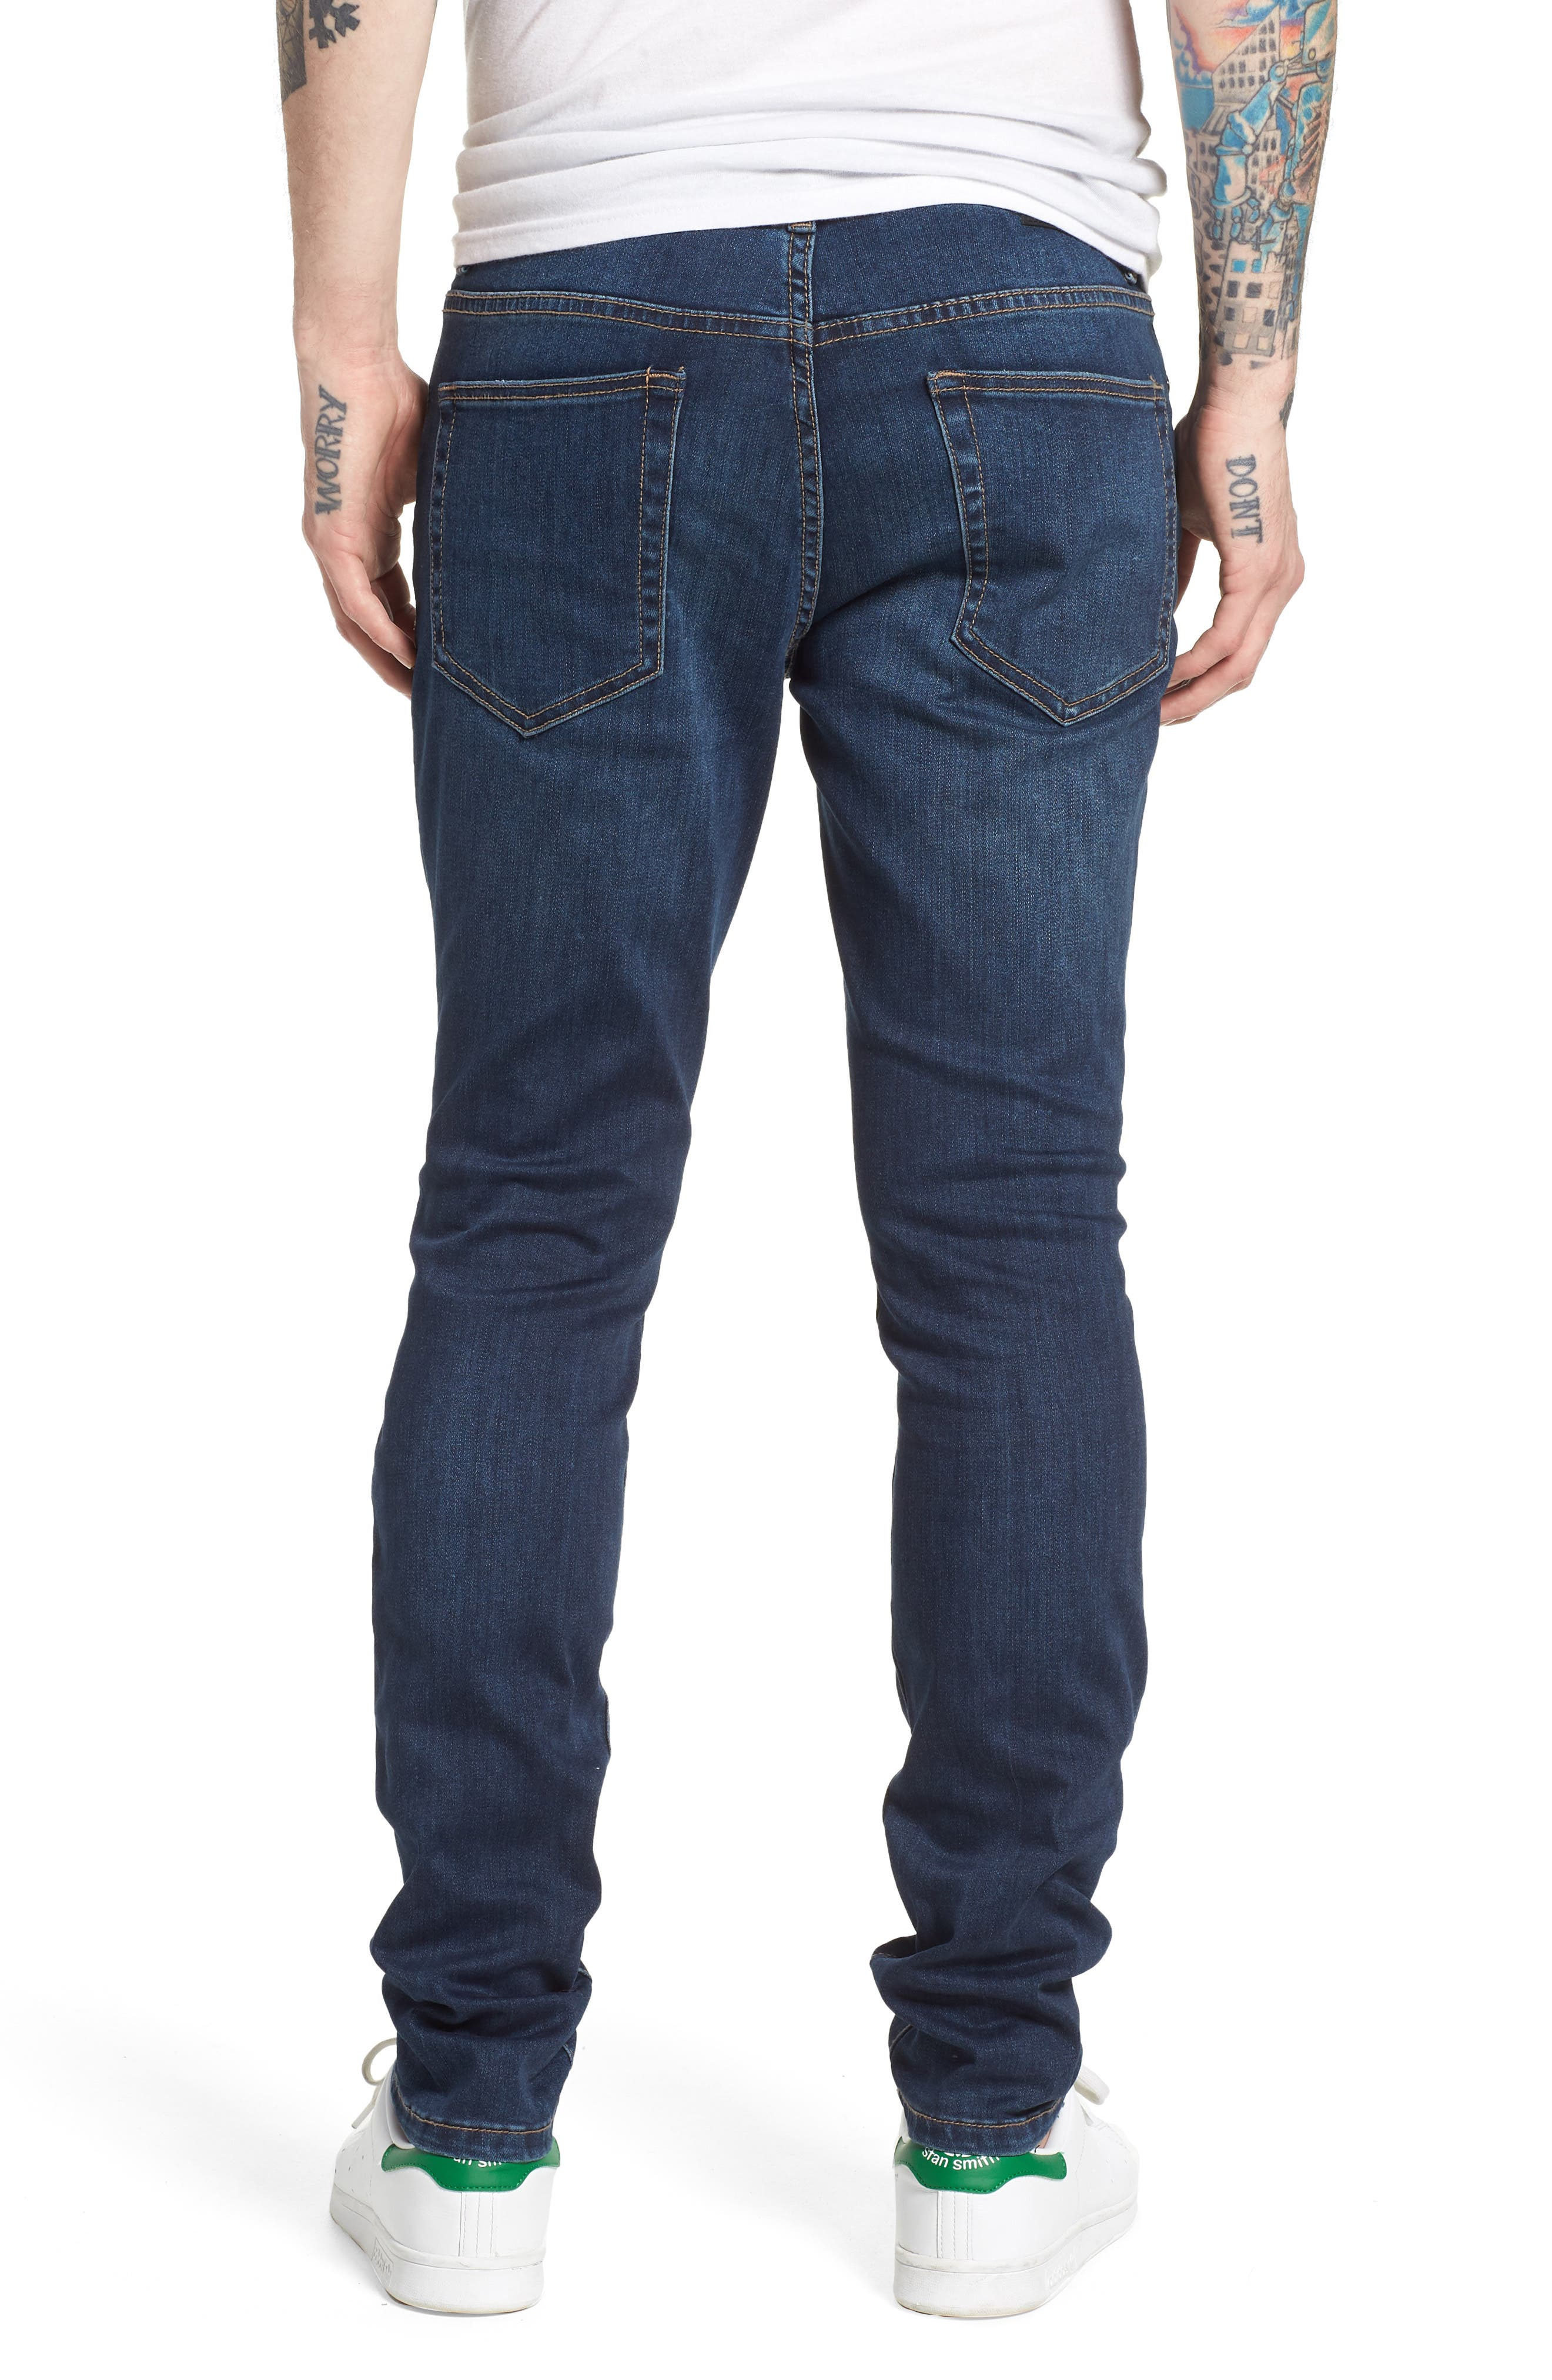 Jeans Co. Bond Skinny Fit Jeans,                             Alternate thumbnail 2, color,                             Cladwell Dark